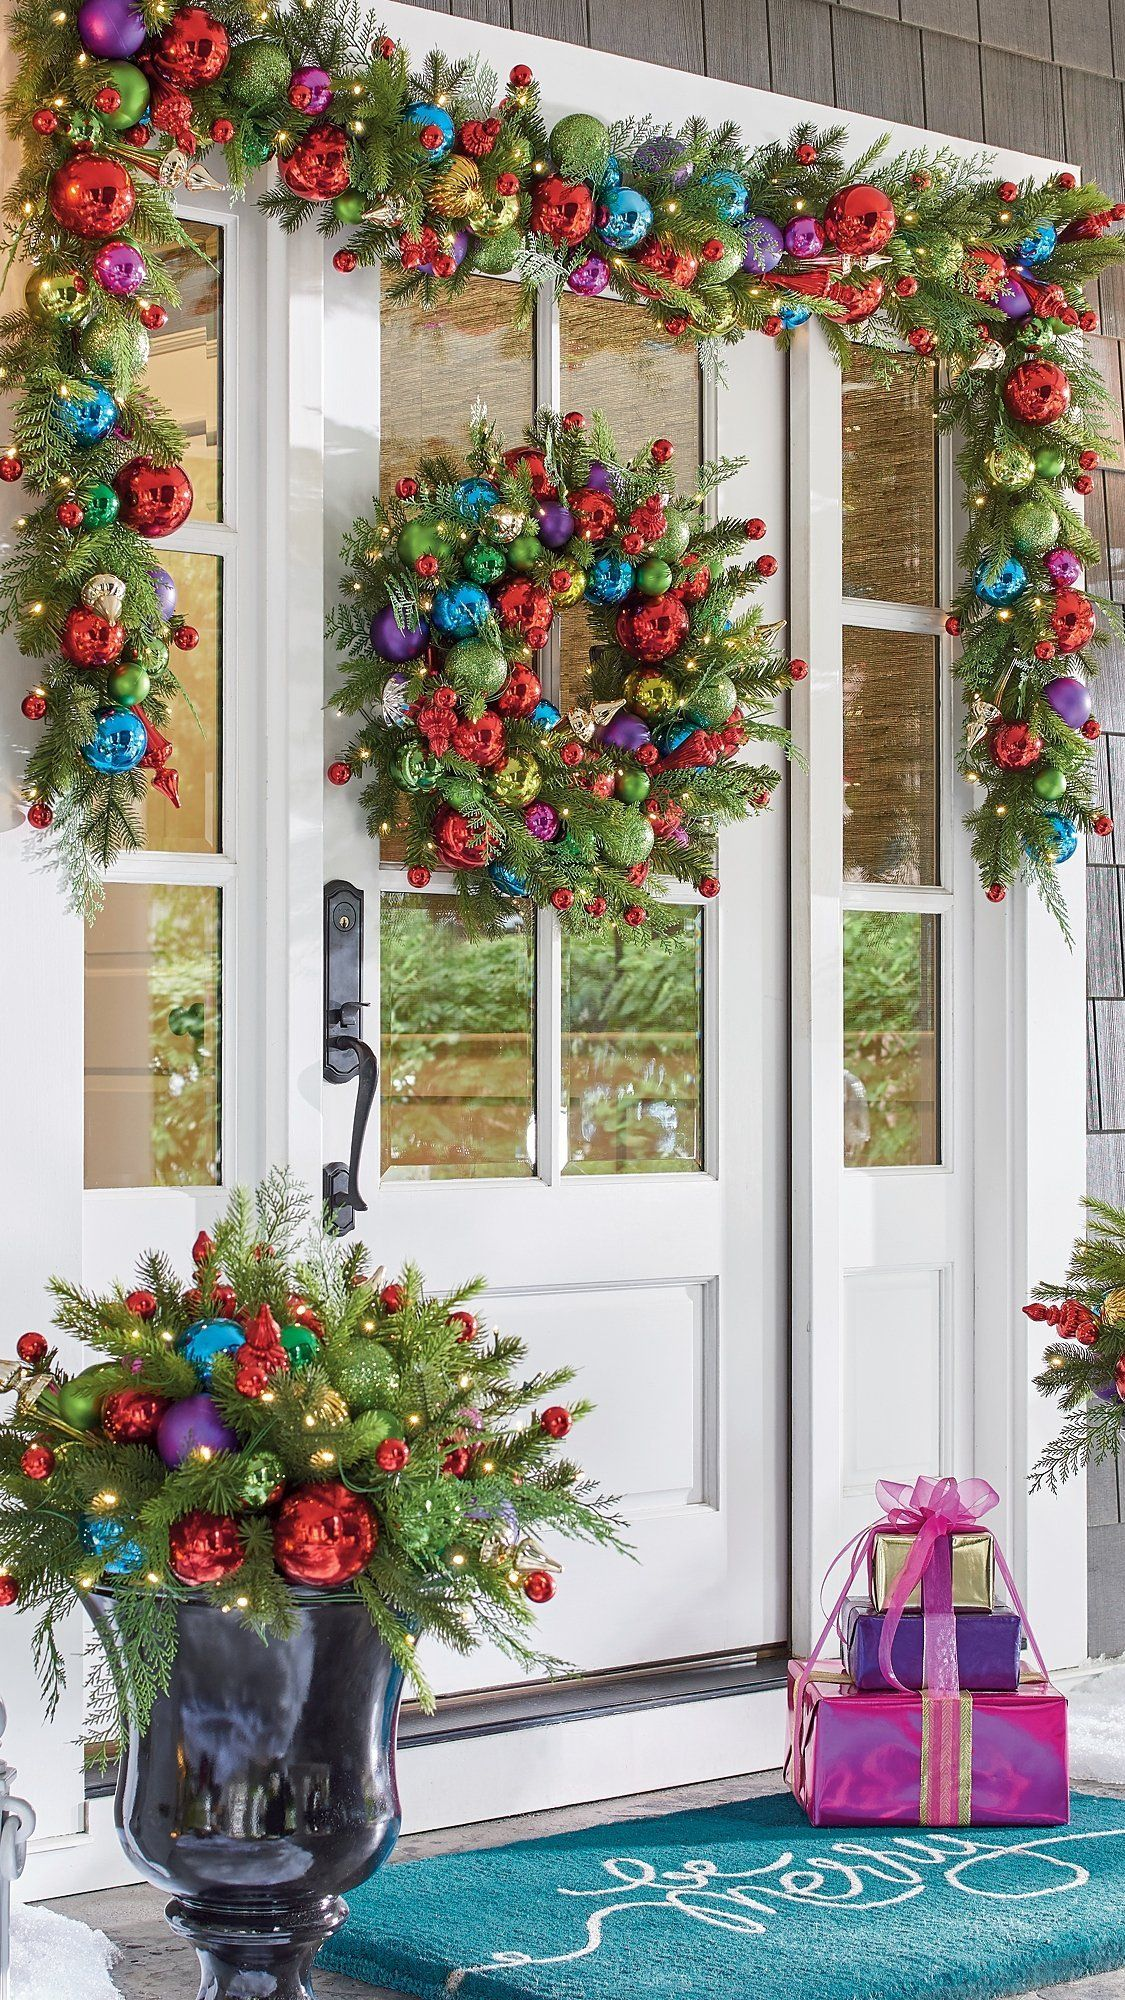 We Re Dreaming Of A Bright Christmas And Our Merry Cordless Wreath Is Making It All Come True Glowing Lights Lush Faux Evergreen